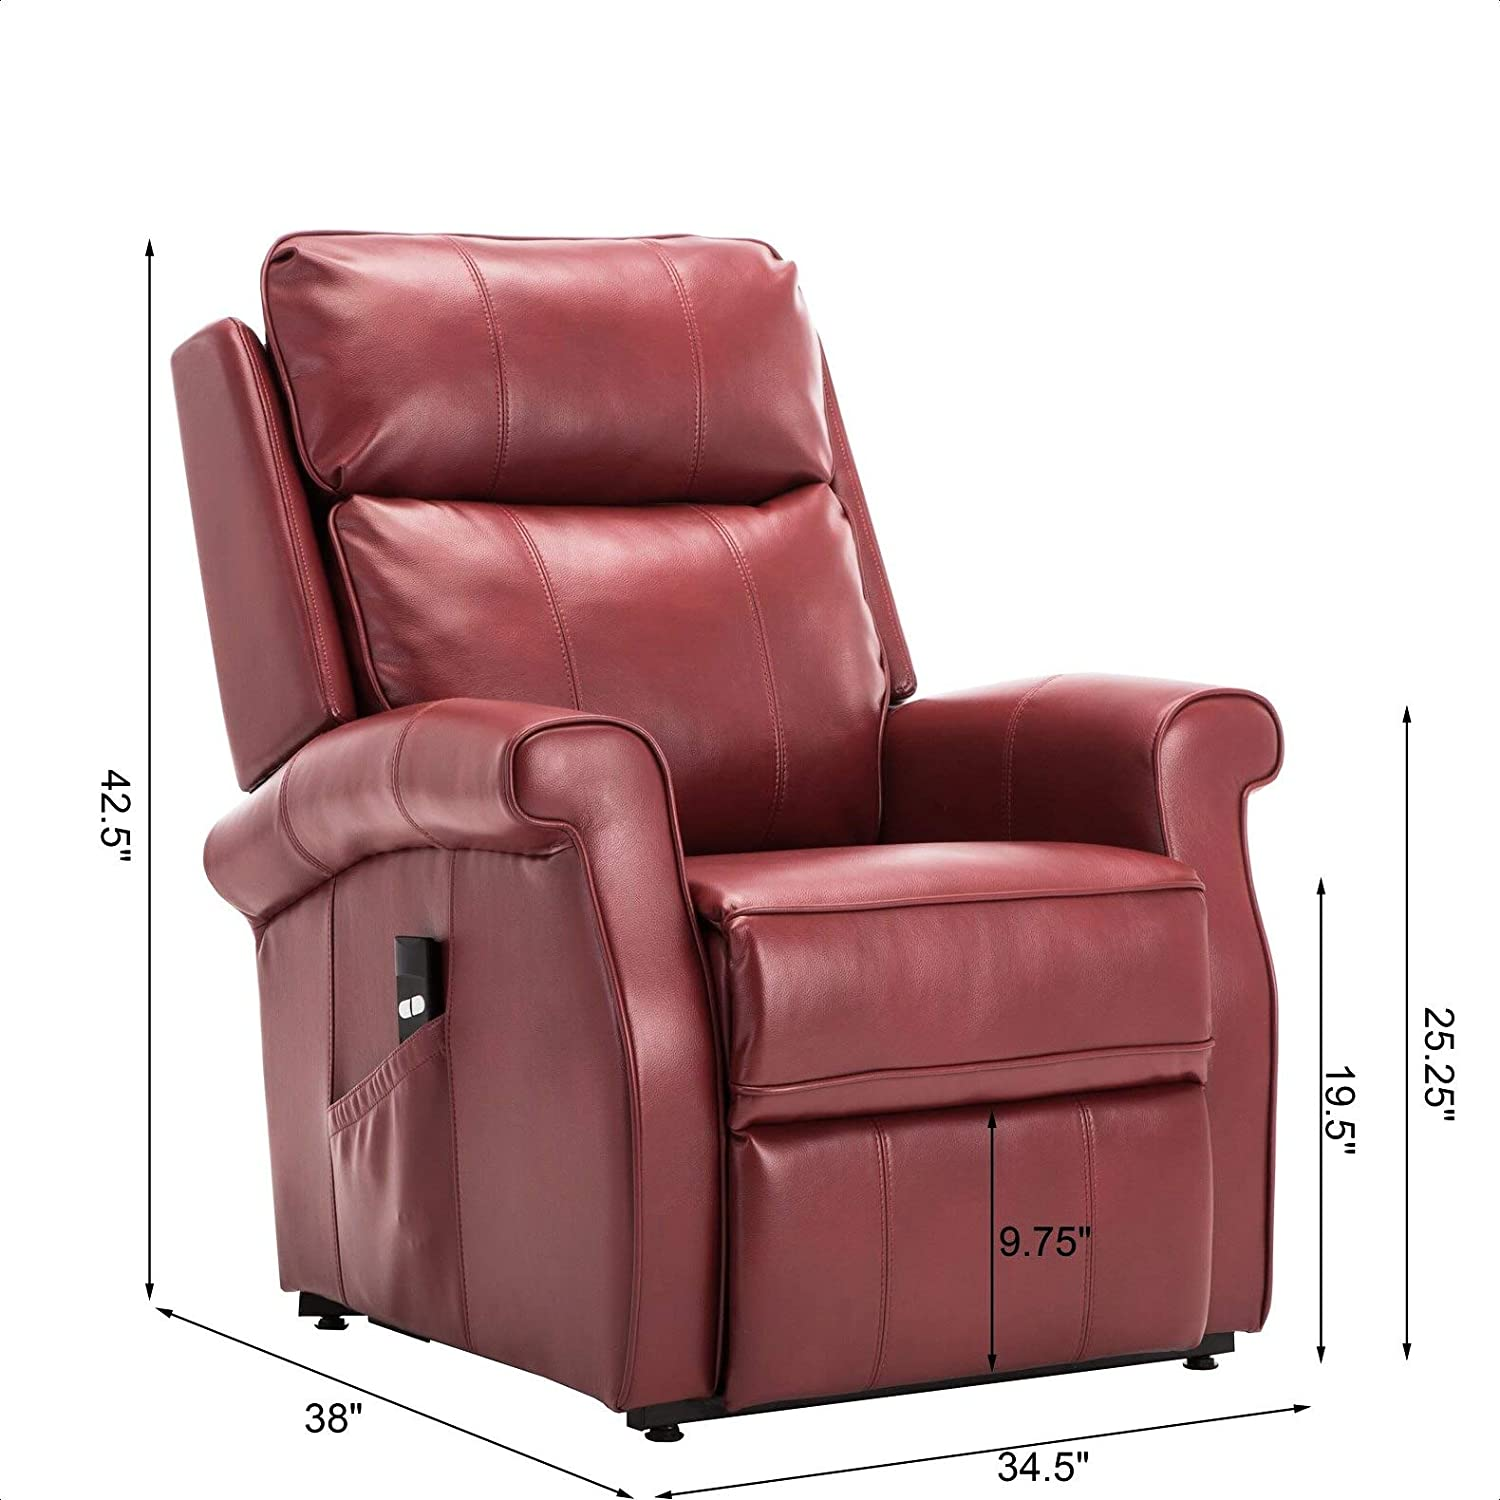 3. Best for Back Pain: Nojus Faux Leather Power Recliner